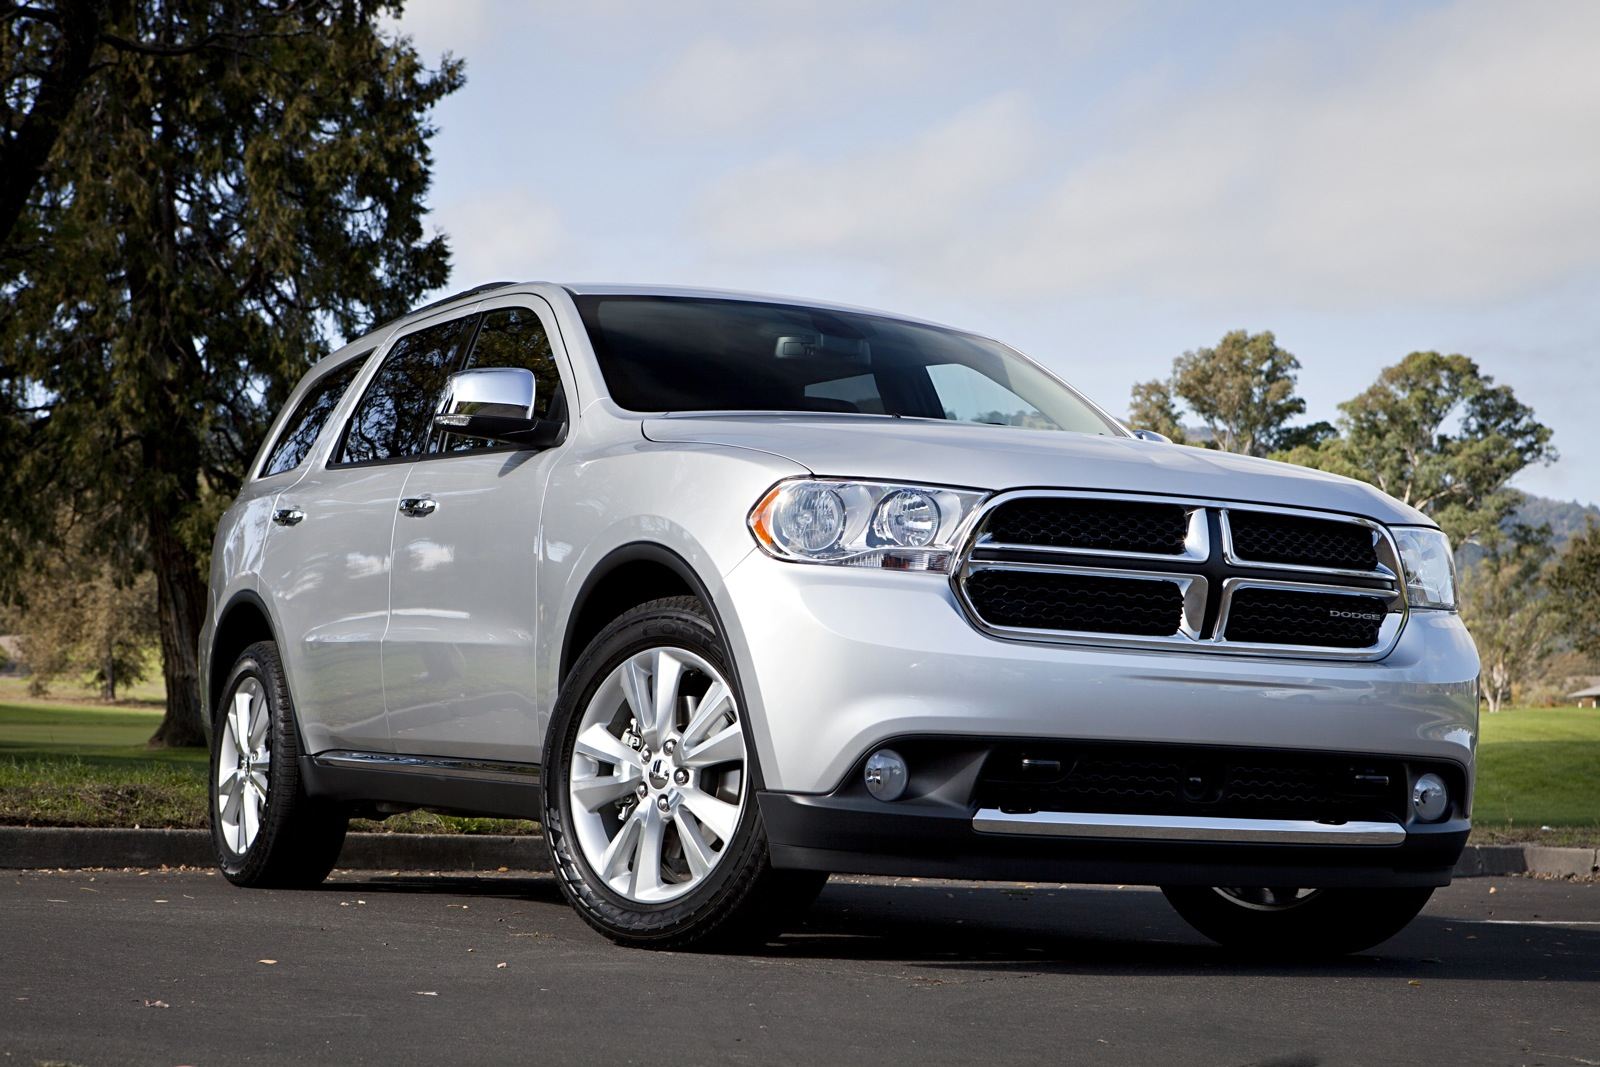 2013 Dodge Durango Review Ratings Specs Prices And Photos The Car Connection